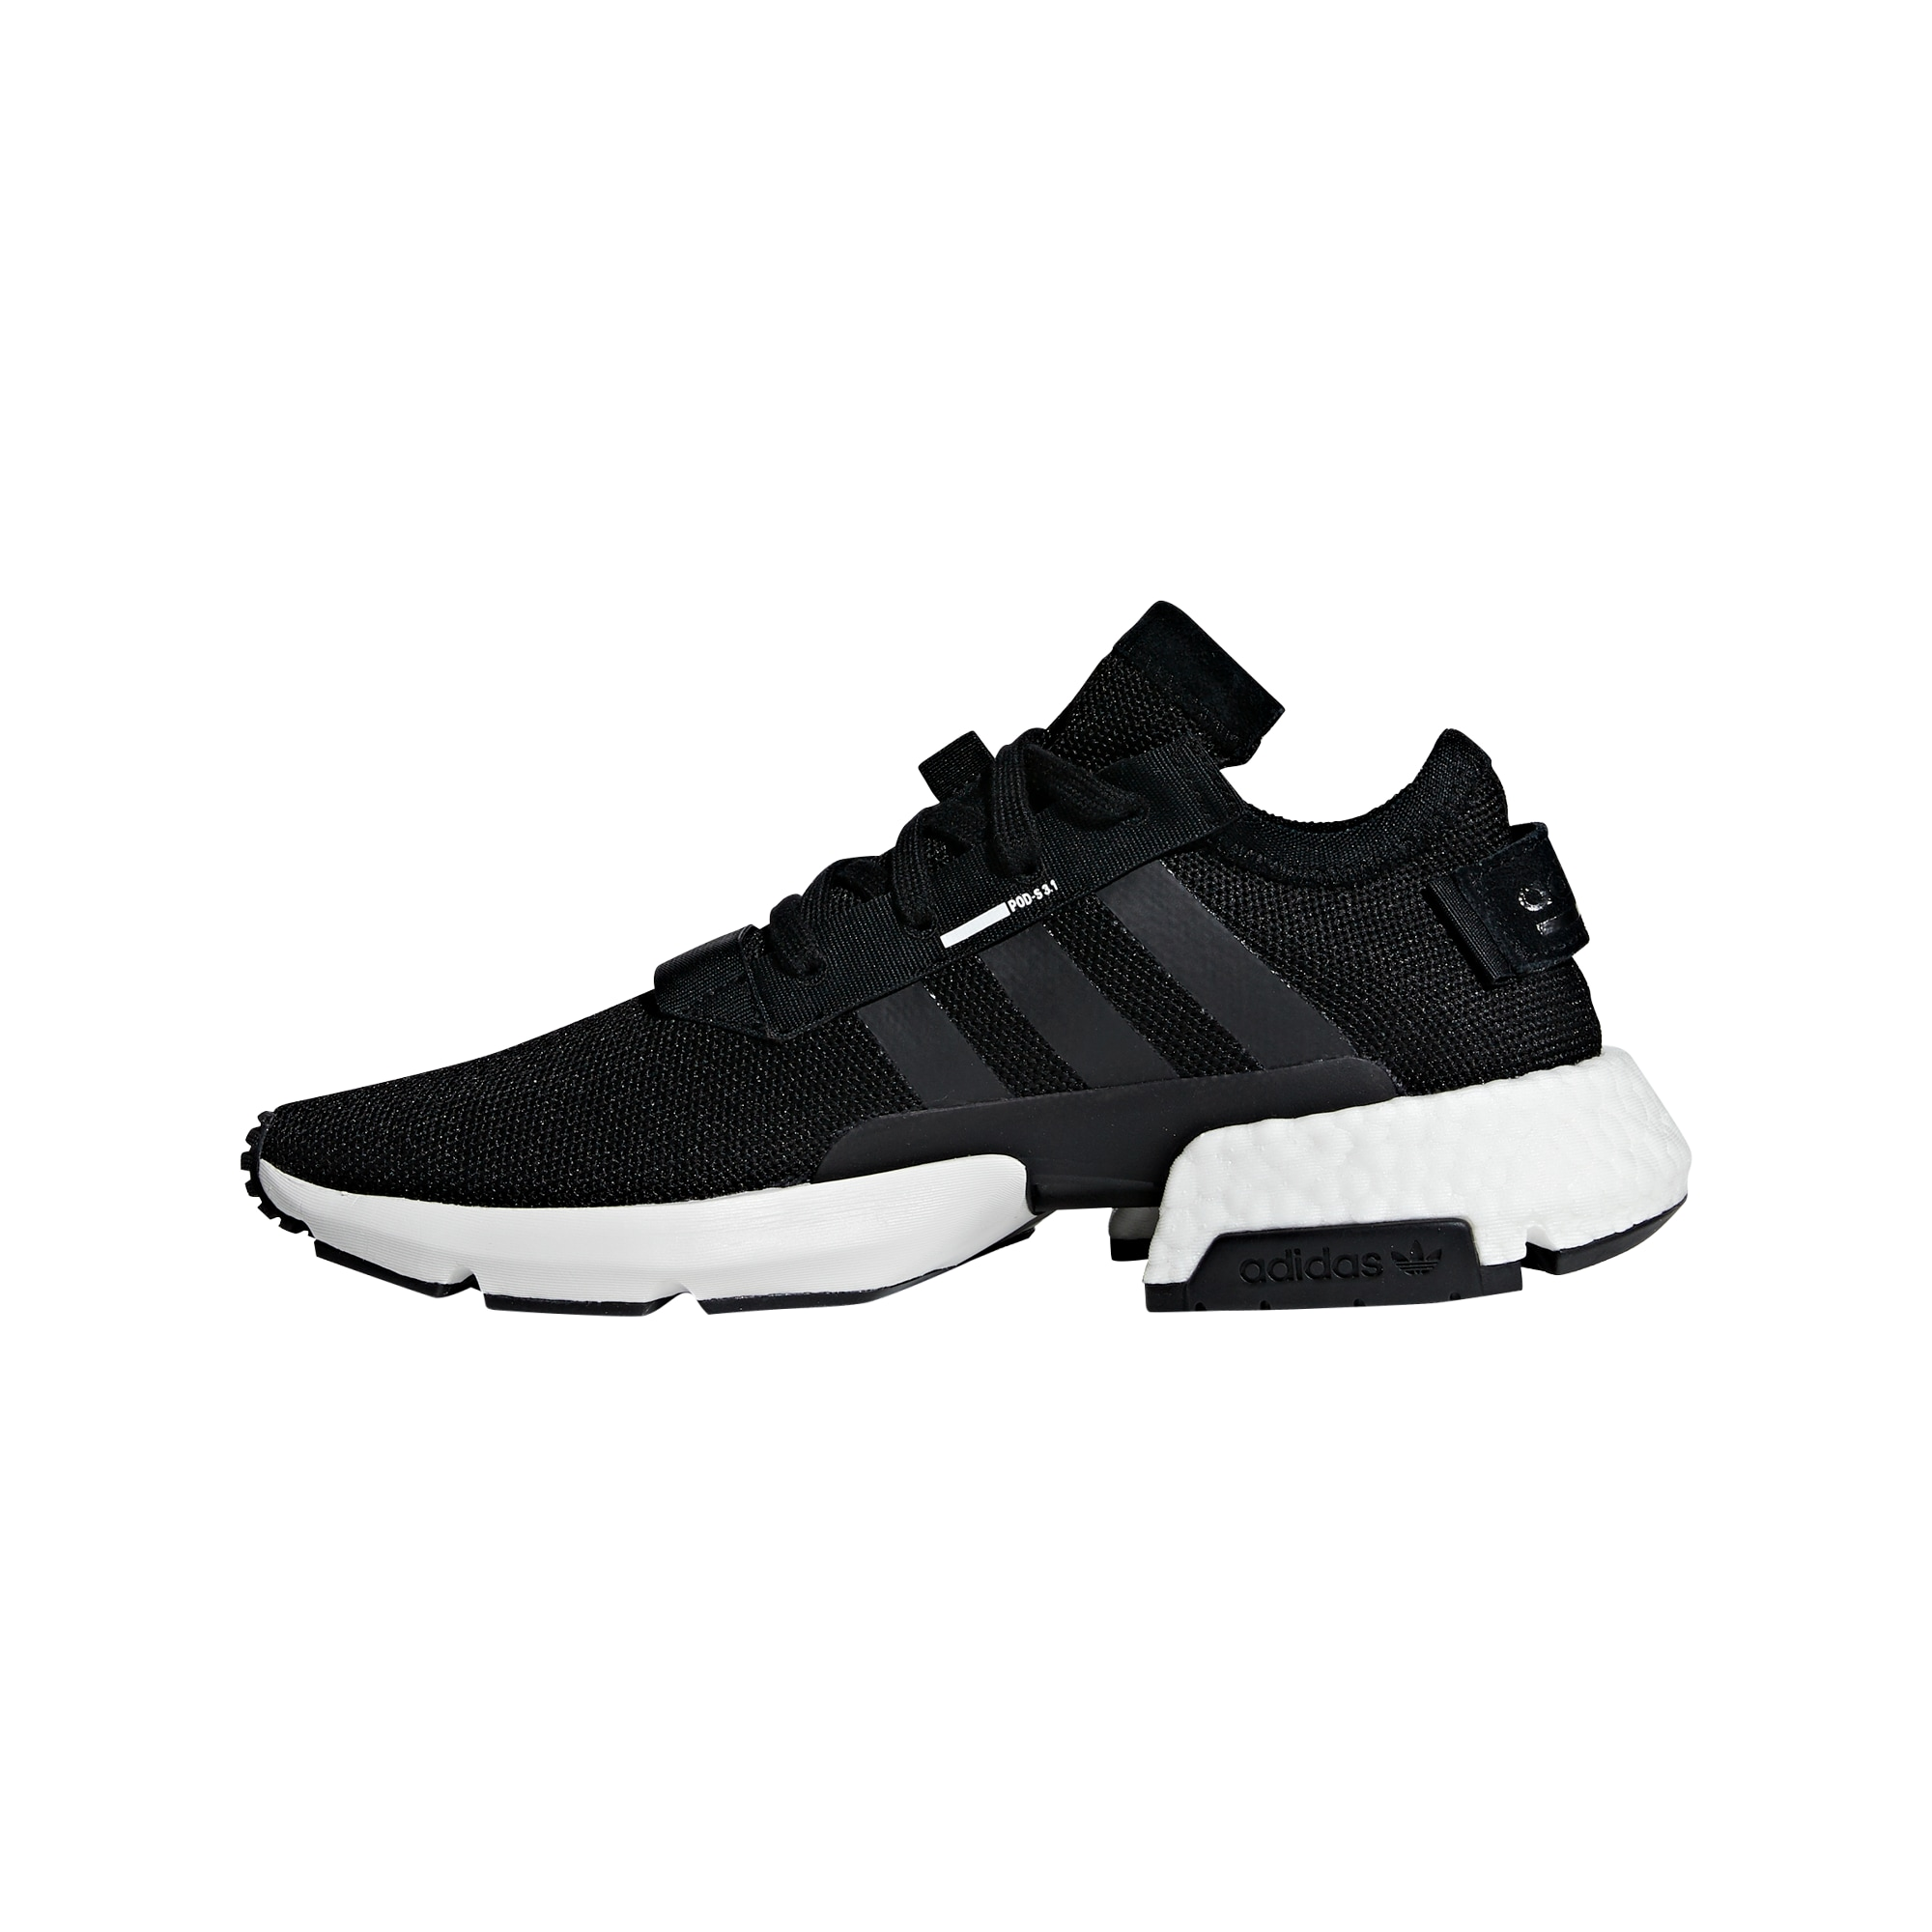 ADIDAS ORIGINALS, Heren Sneakers laag 'POD-S3.1', zwart / wit